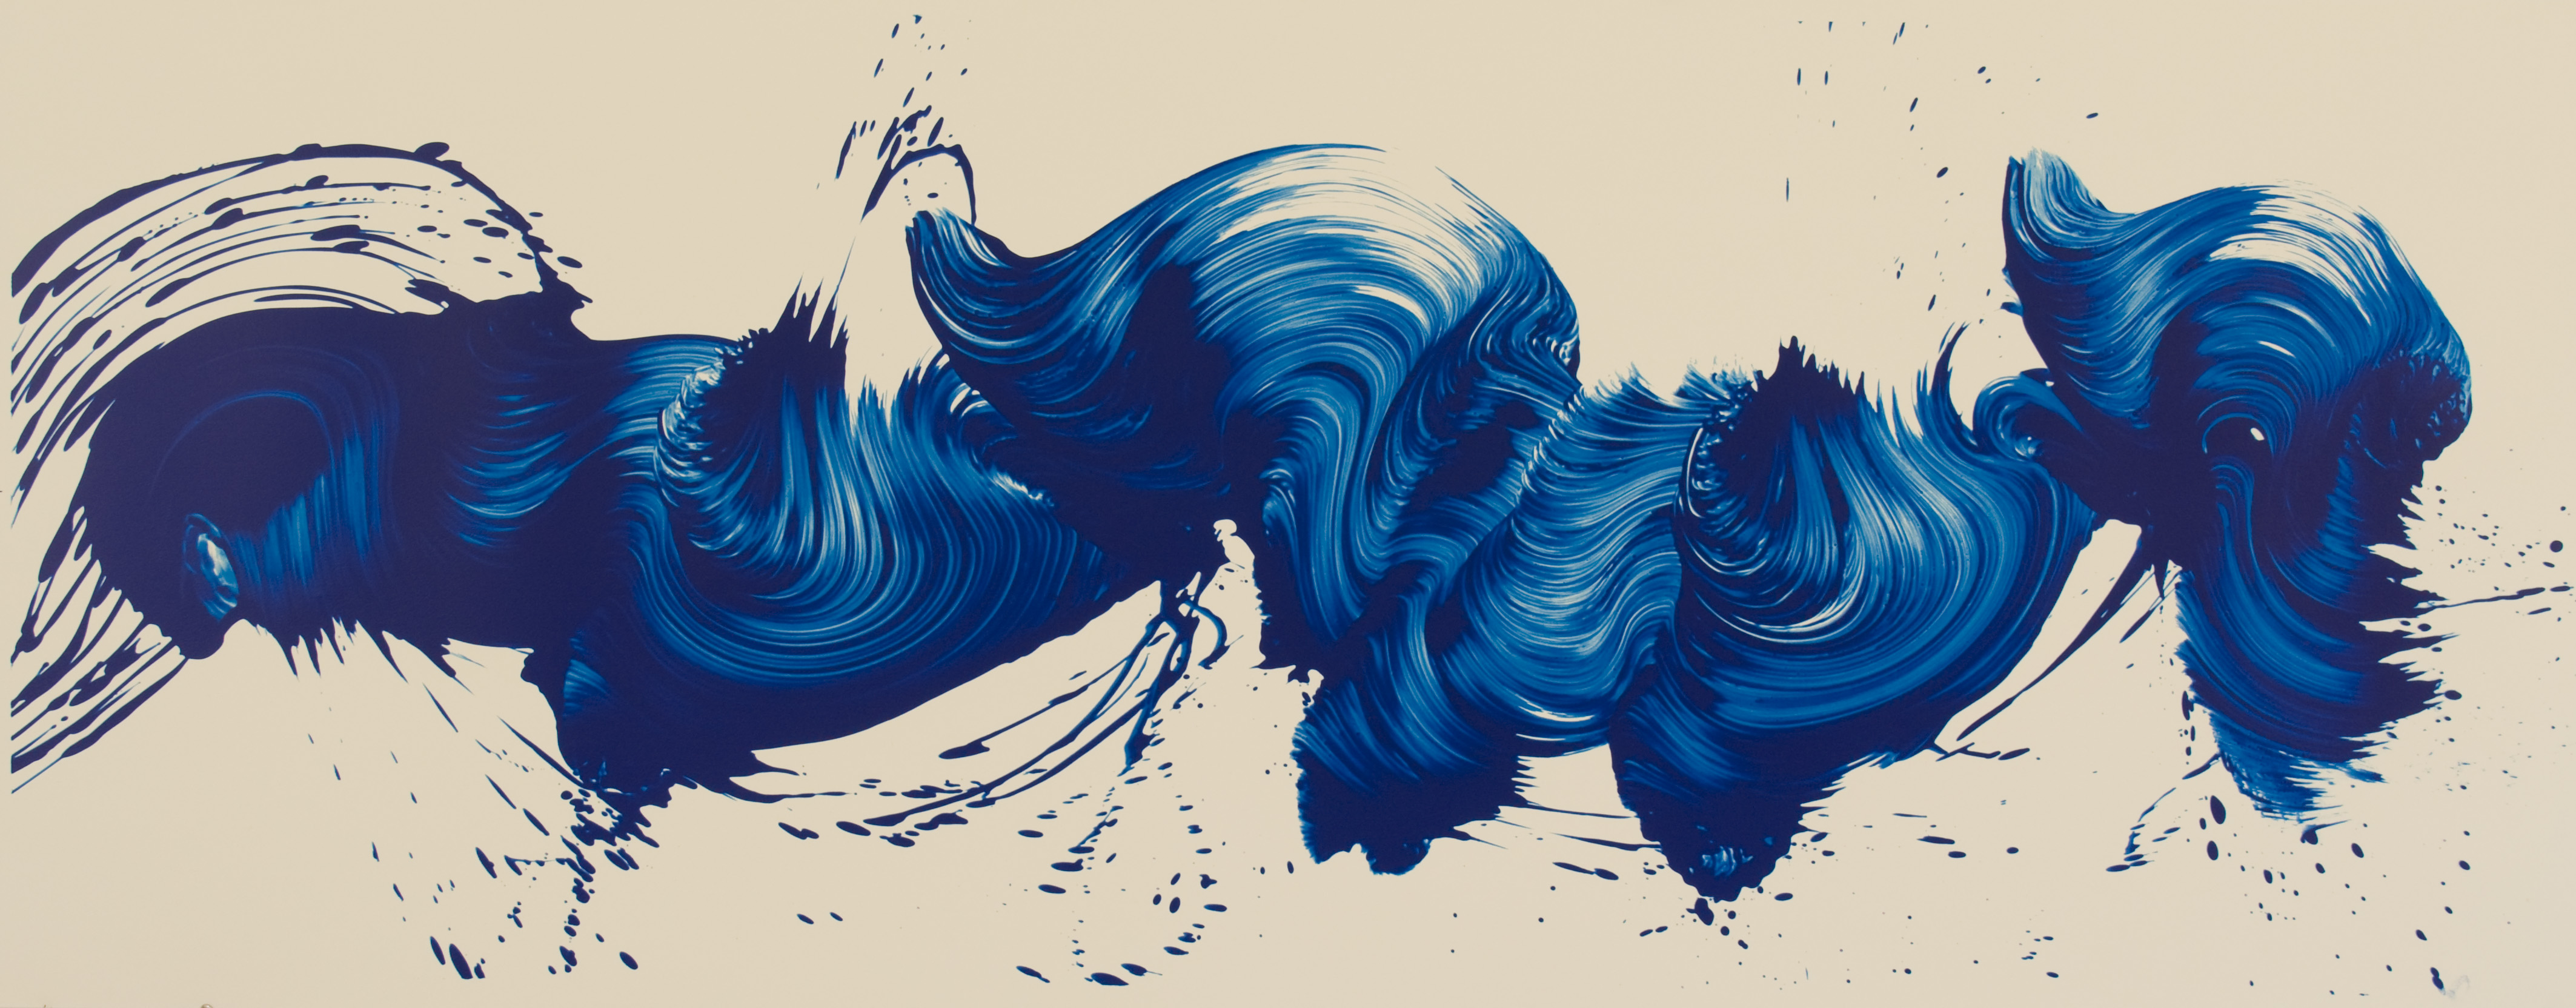 James Nares - West on Sunrise